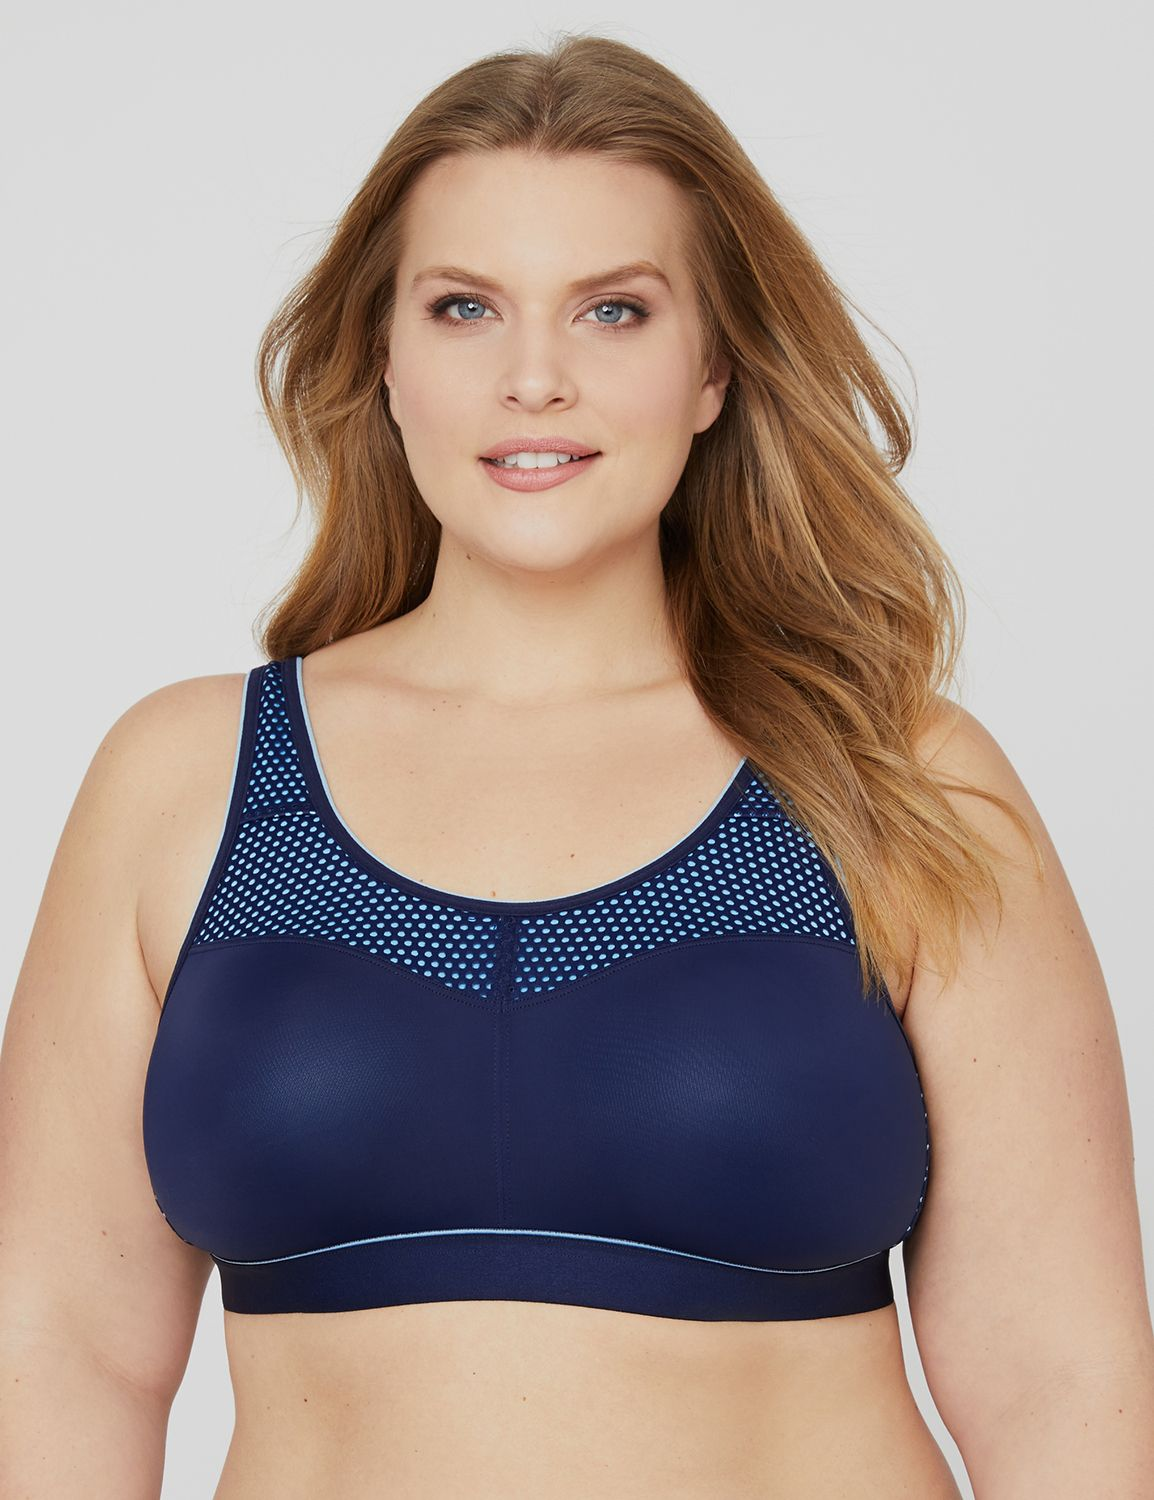 Exhale Active Bra Strappy UW Sport Bra MP-300095093